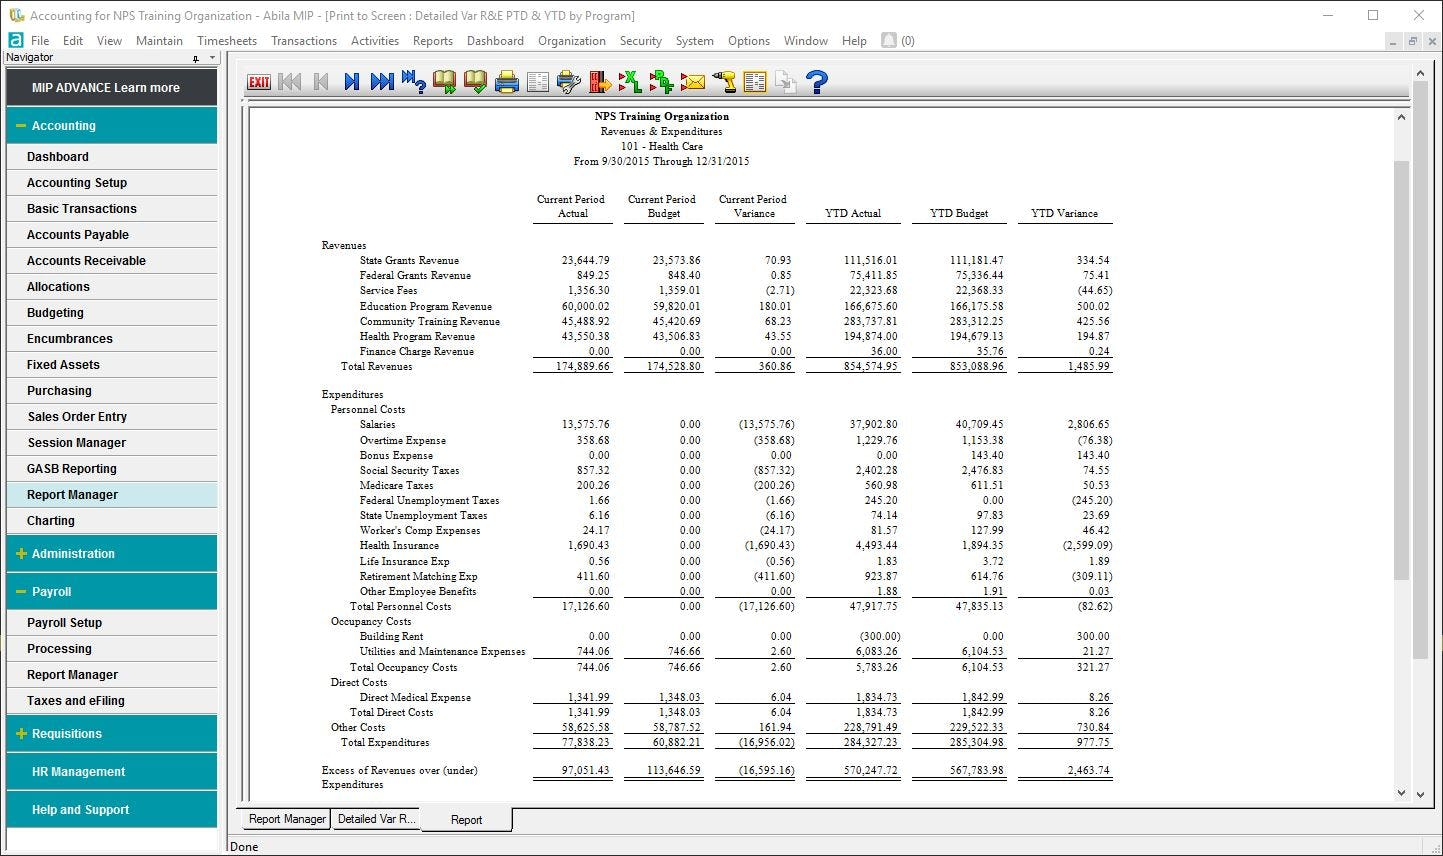 MIP Fund Accounting Software - Revenues and expenditures